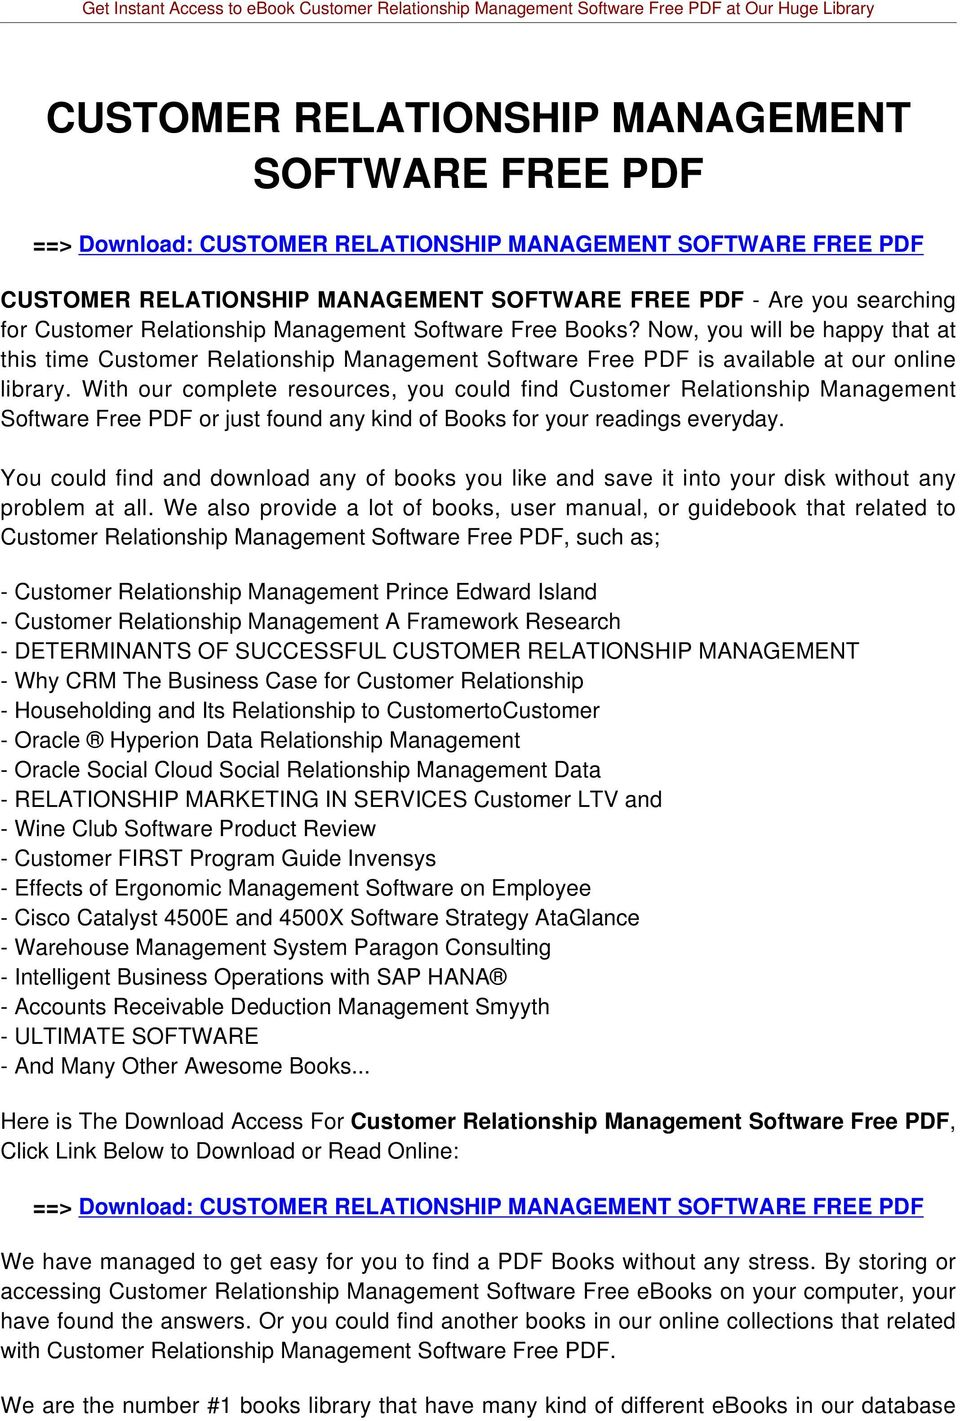 With our complete resources, you could find Customer Relationship Management Software Free PDF or just found any kind of Books for your readings everyday.